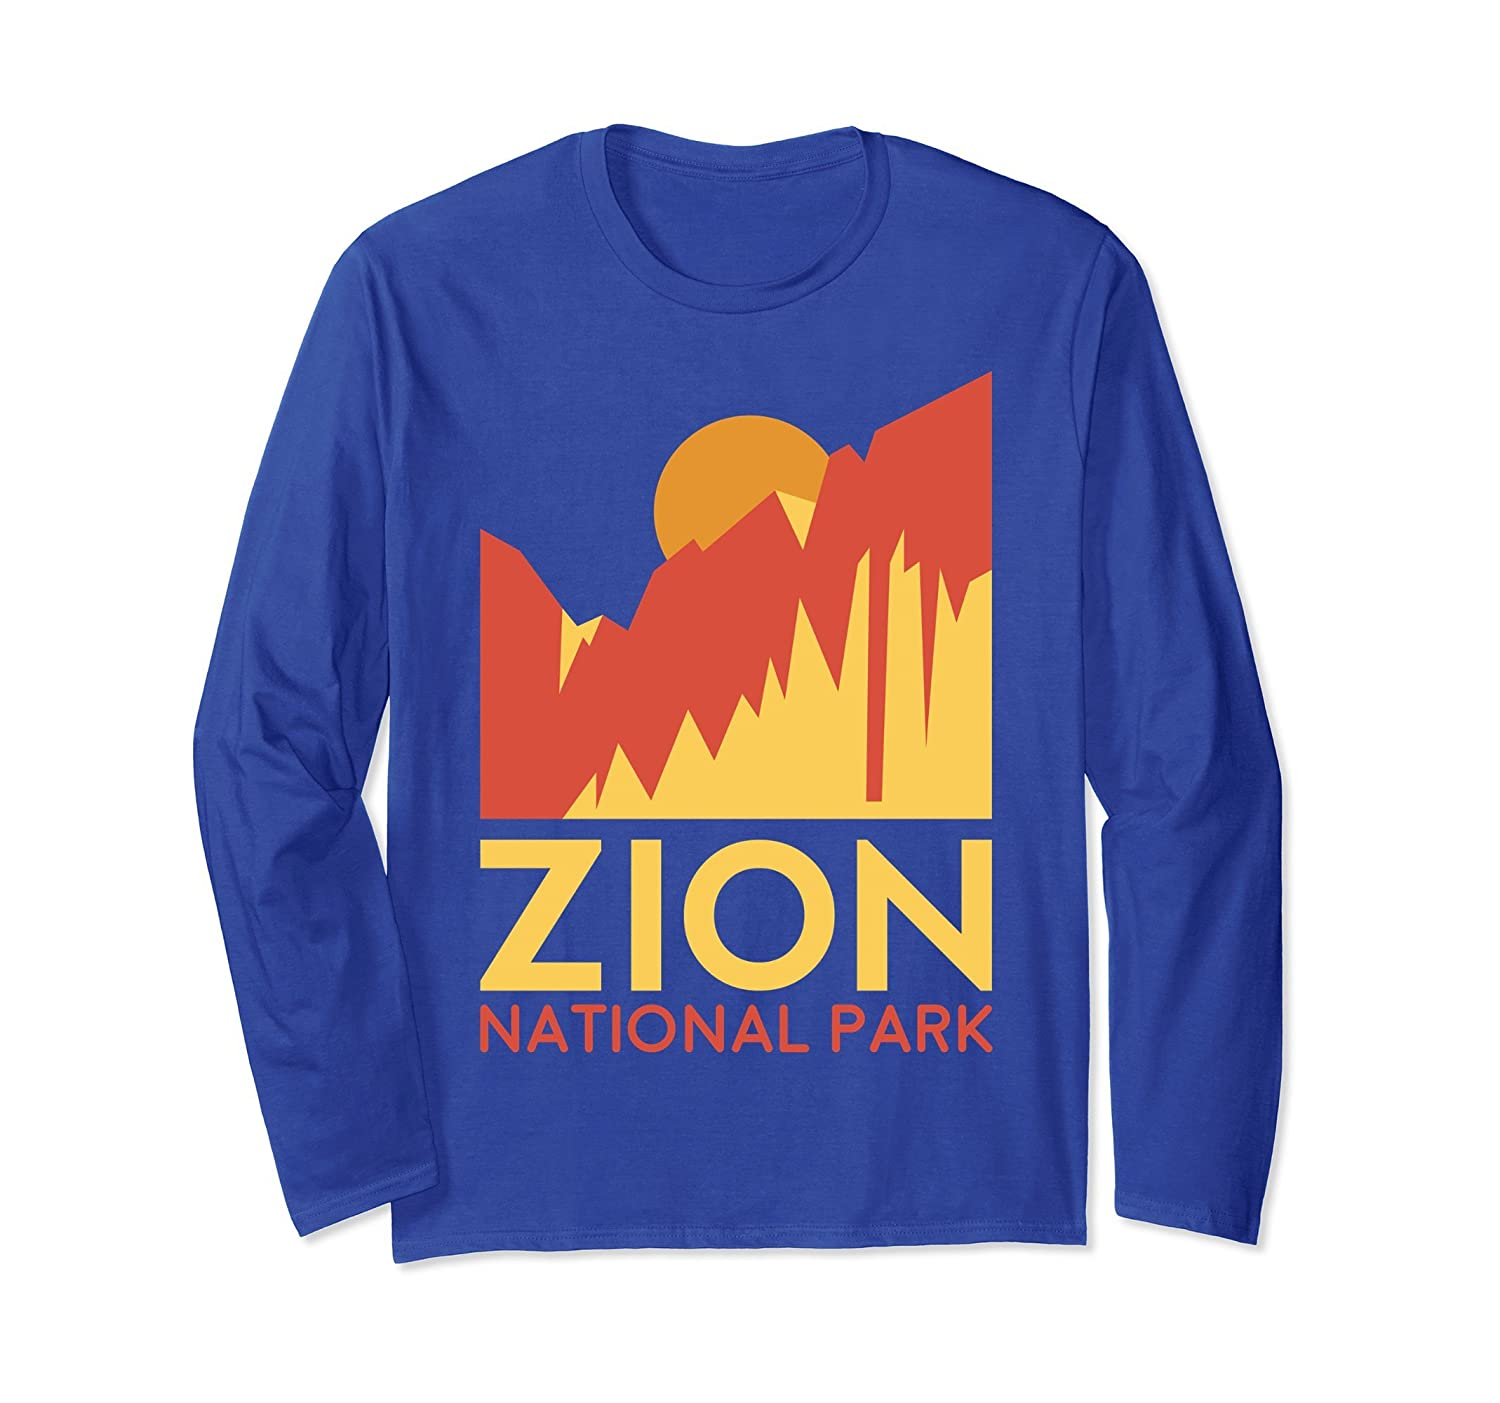 Zion National Park Long Sleeve Shirt -Outdoor Camping Hiking-TH